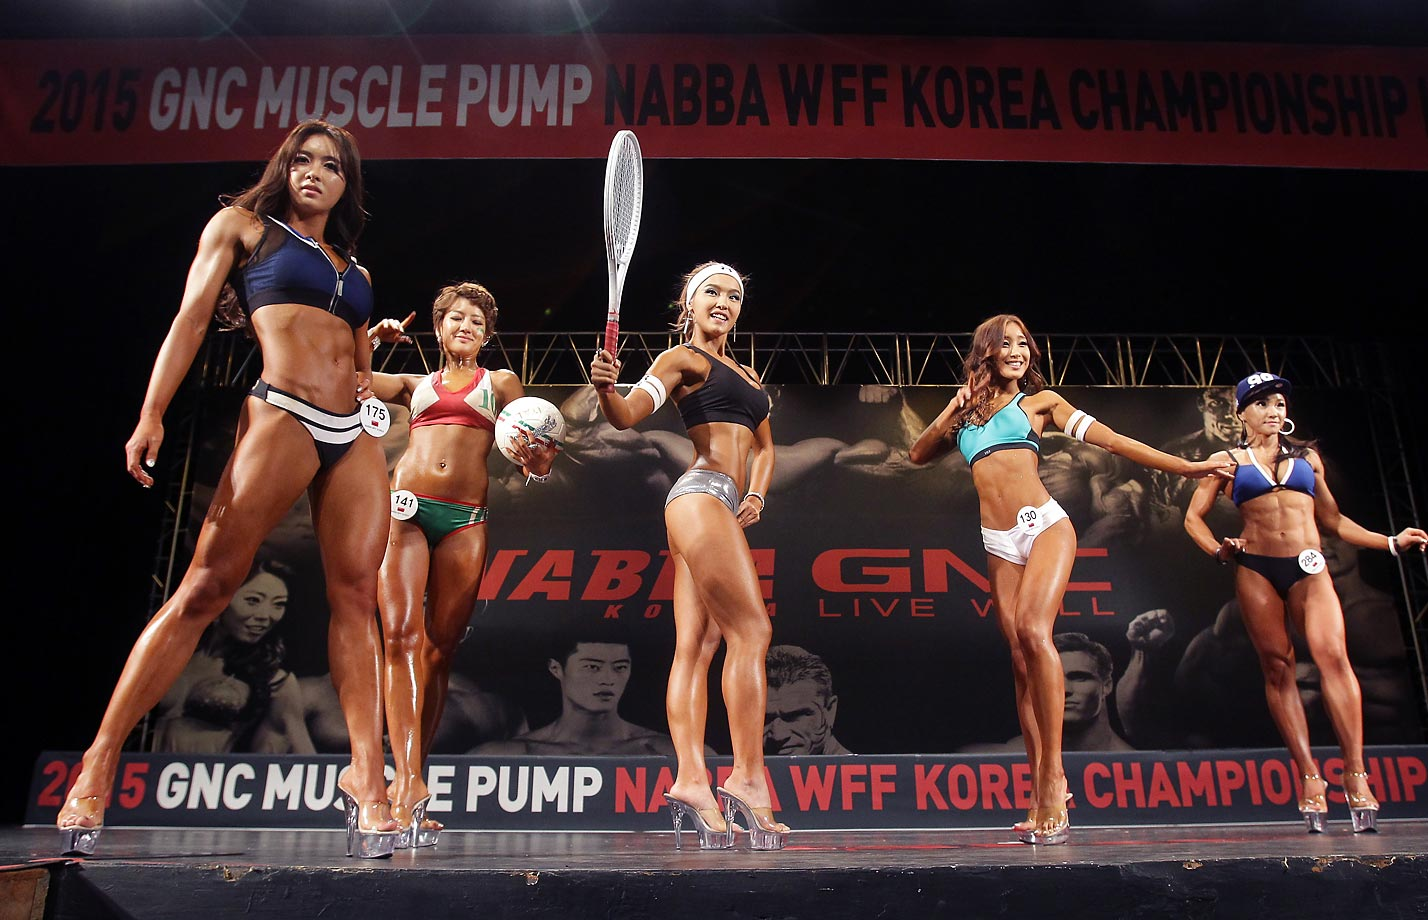 Bodybuilders pose for judges during the NABBA WFF Korea Championship in Seoul, South Korea.